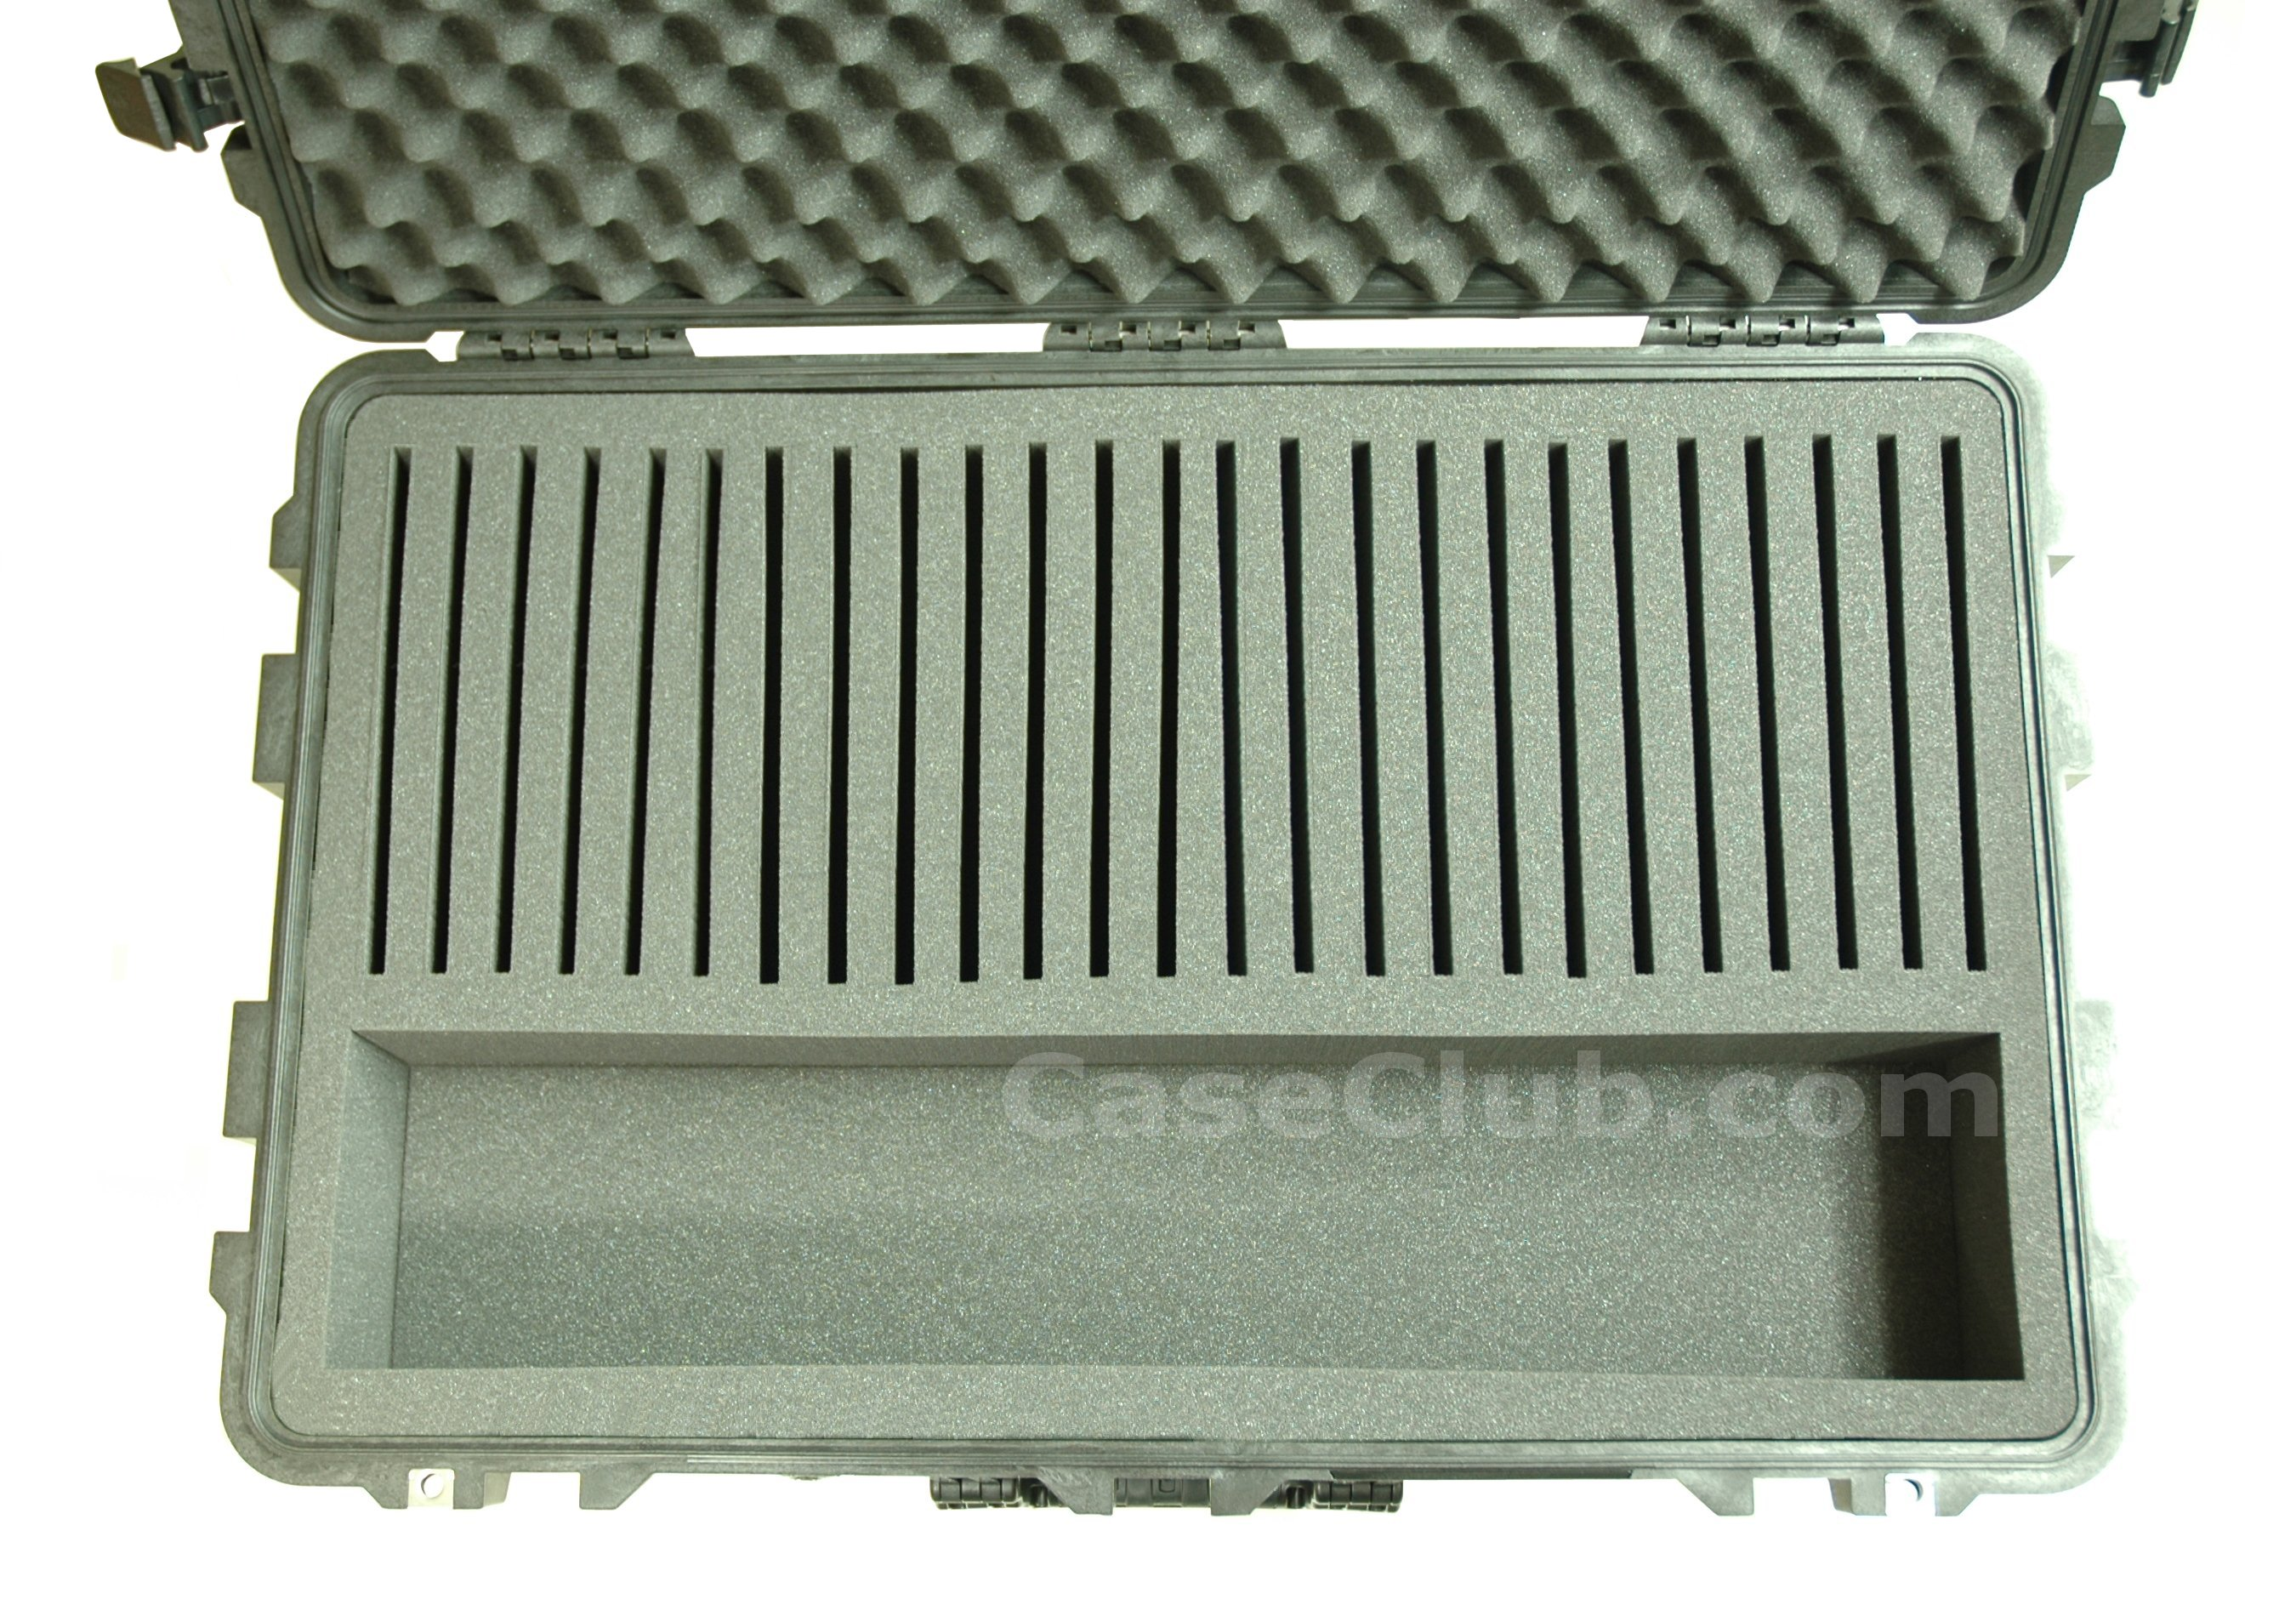 Pelican™ 1650 Case Custom Foam Example: 25 IPad